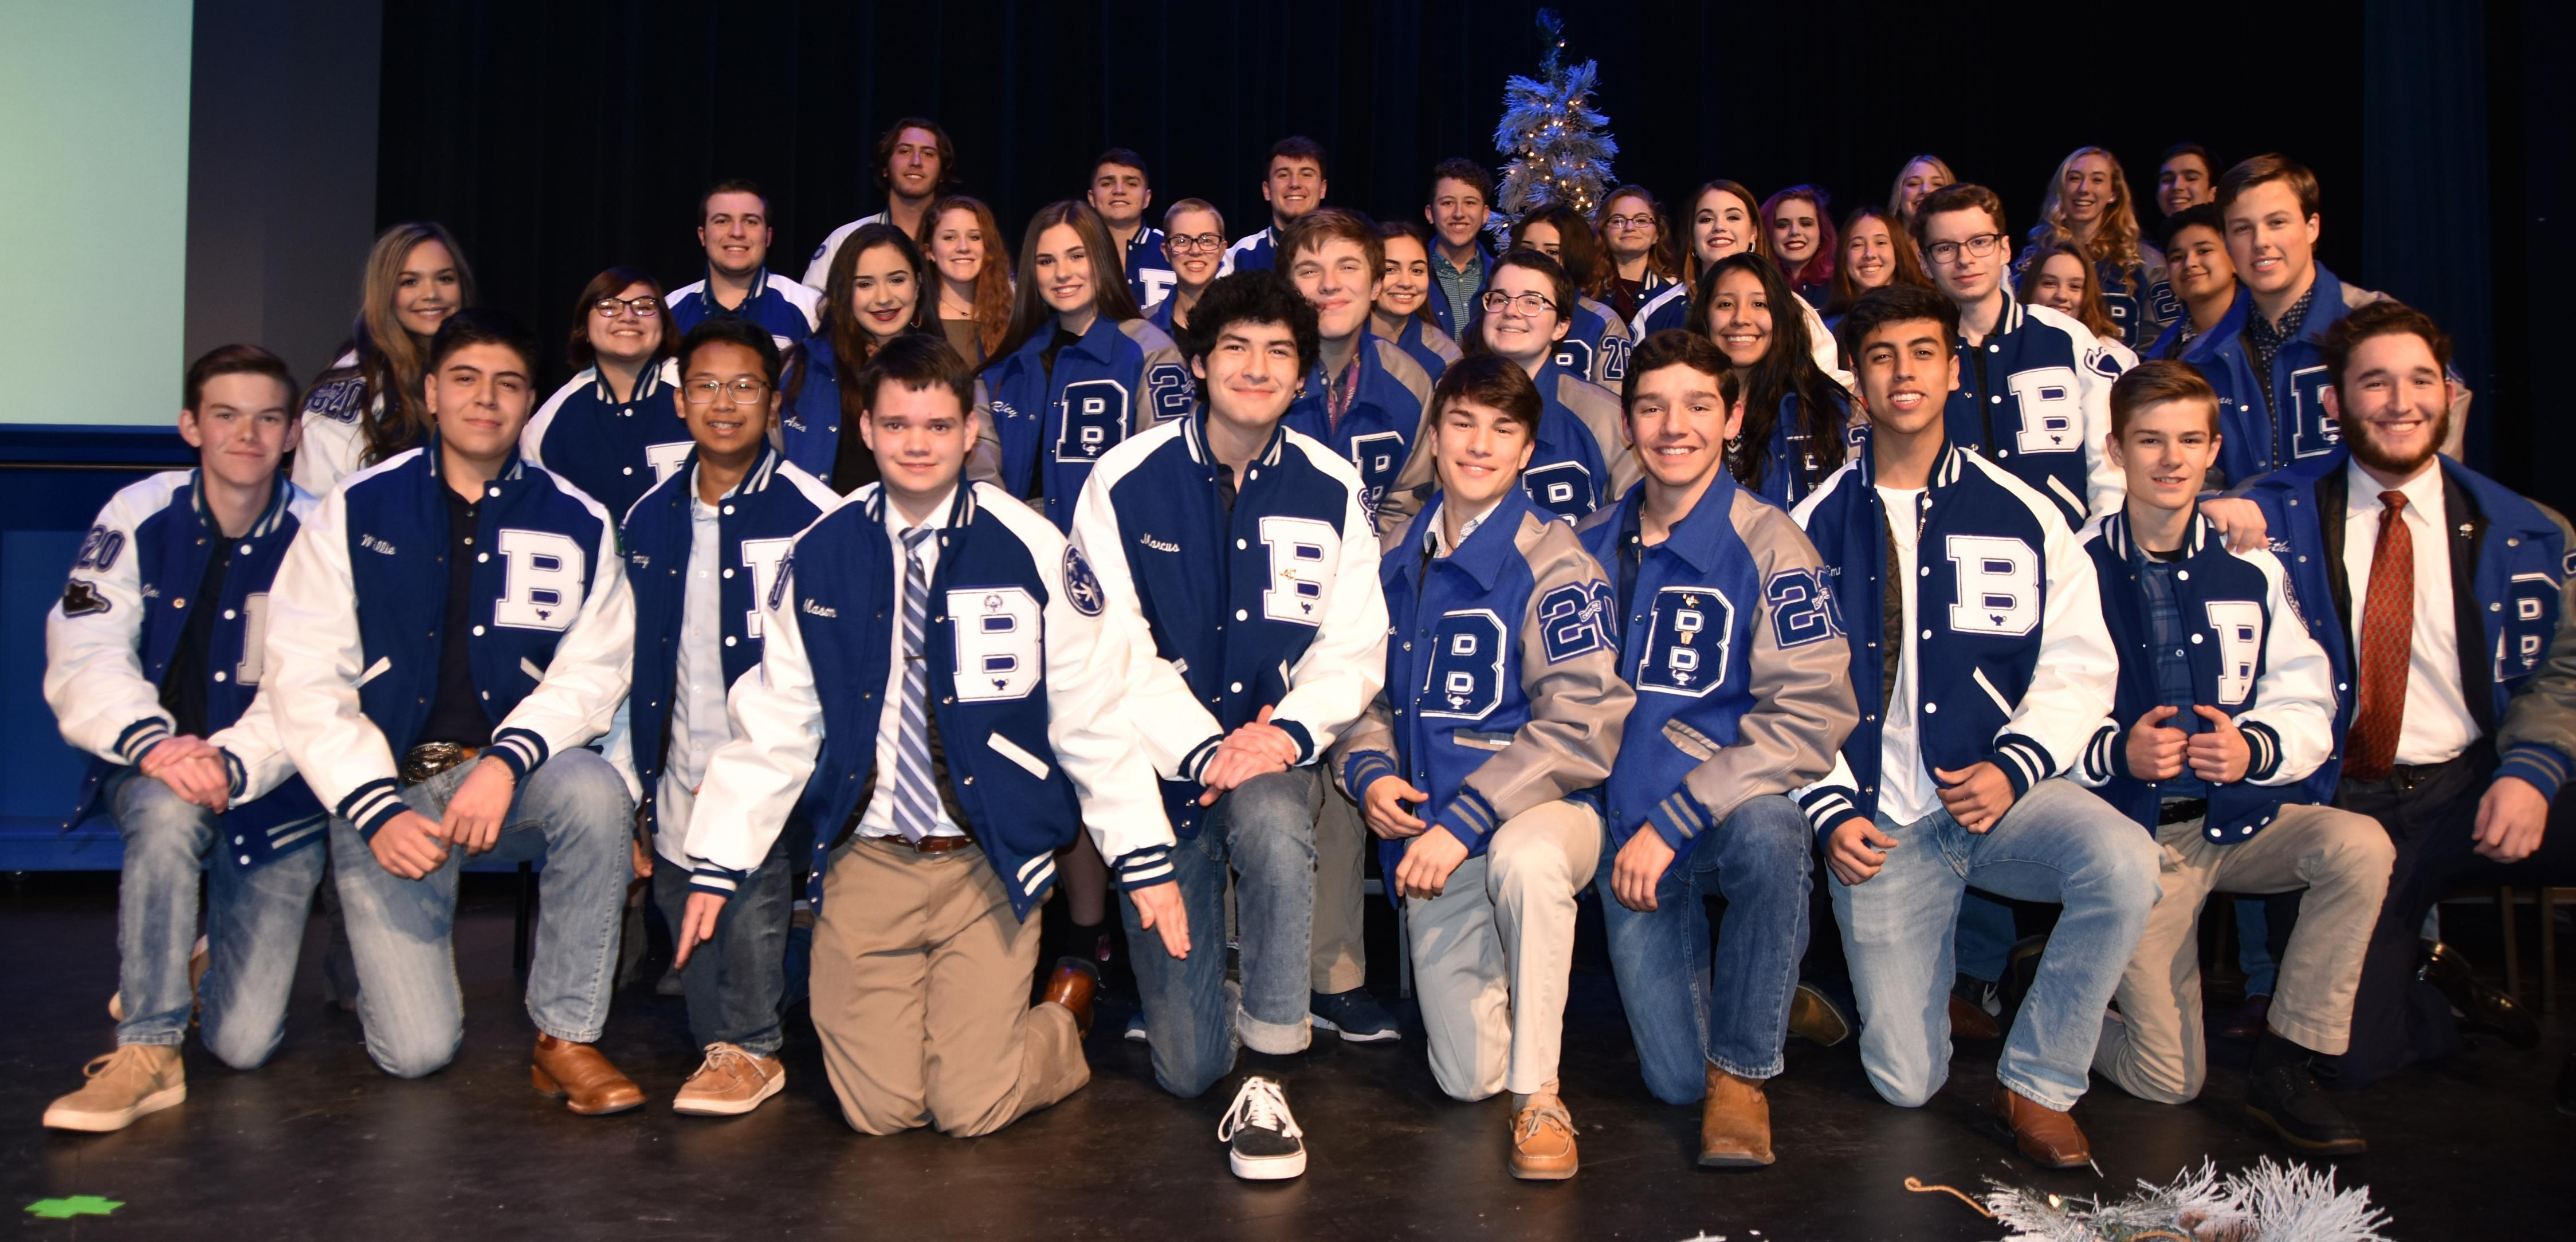 Brewer High School honored 10th through 12th graders who achieved a top 10 percent ranking for the 2017-18 school year during the Academic Letter Jacket Ceremony on Dec. 10. - Juniors